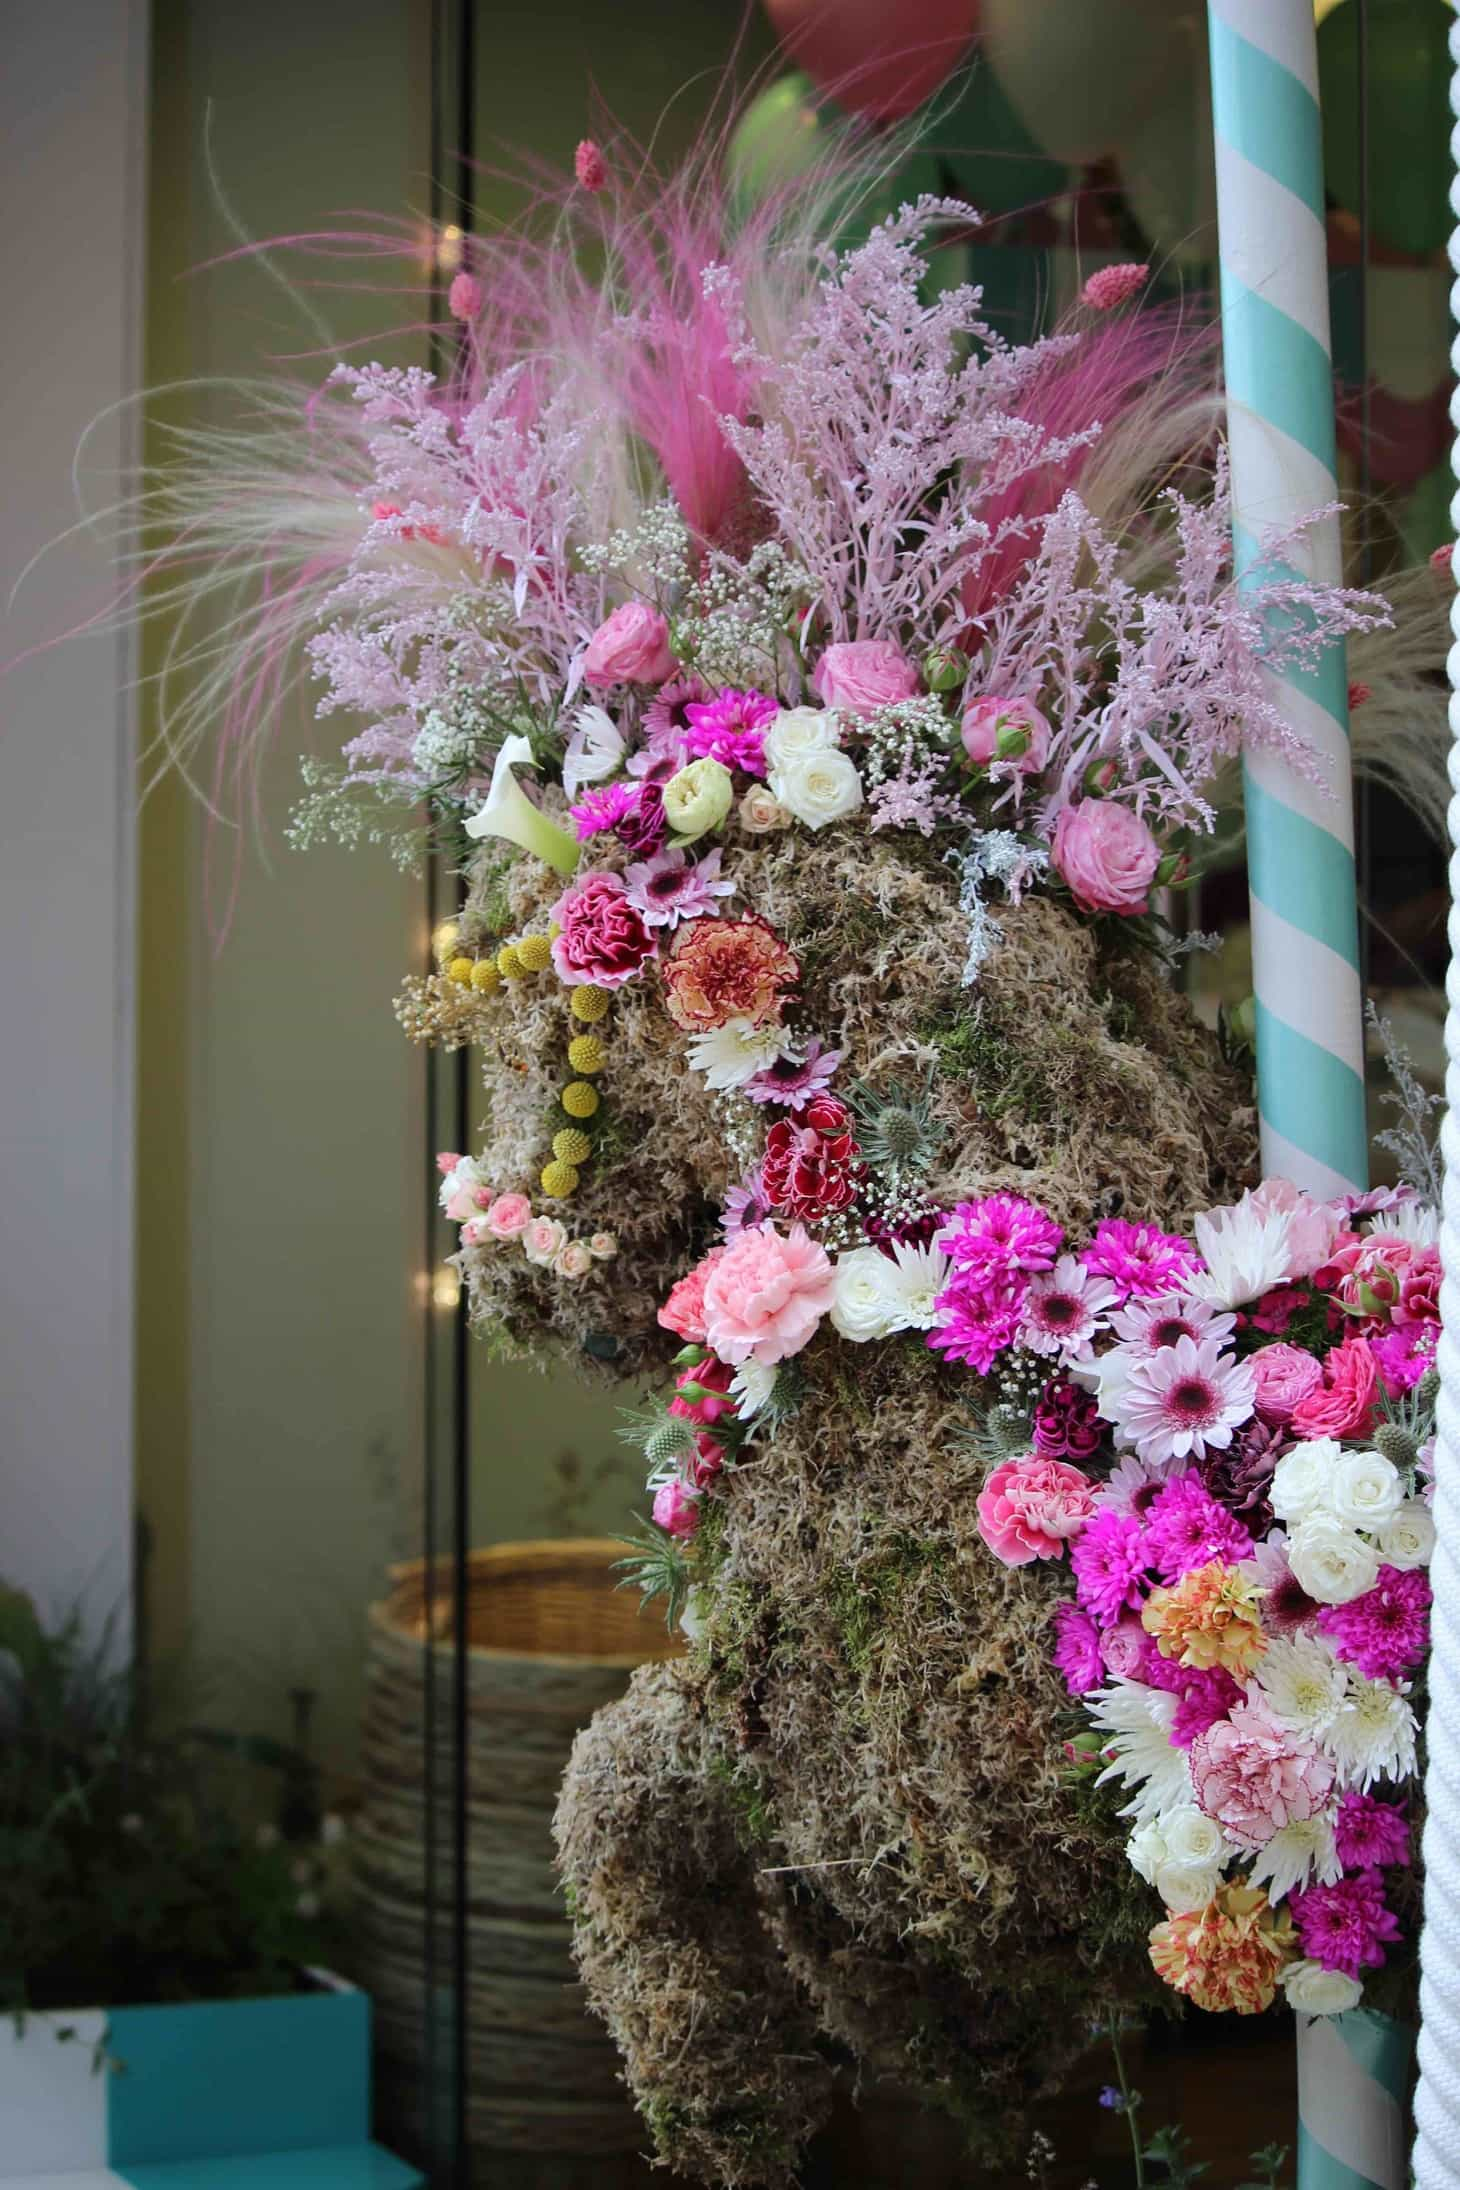 Willow Crossley, Flower Carnaval takes over London,  Chelsea in bloom, 2016, RHS chelsea 2016, Carnaval, Rio, London